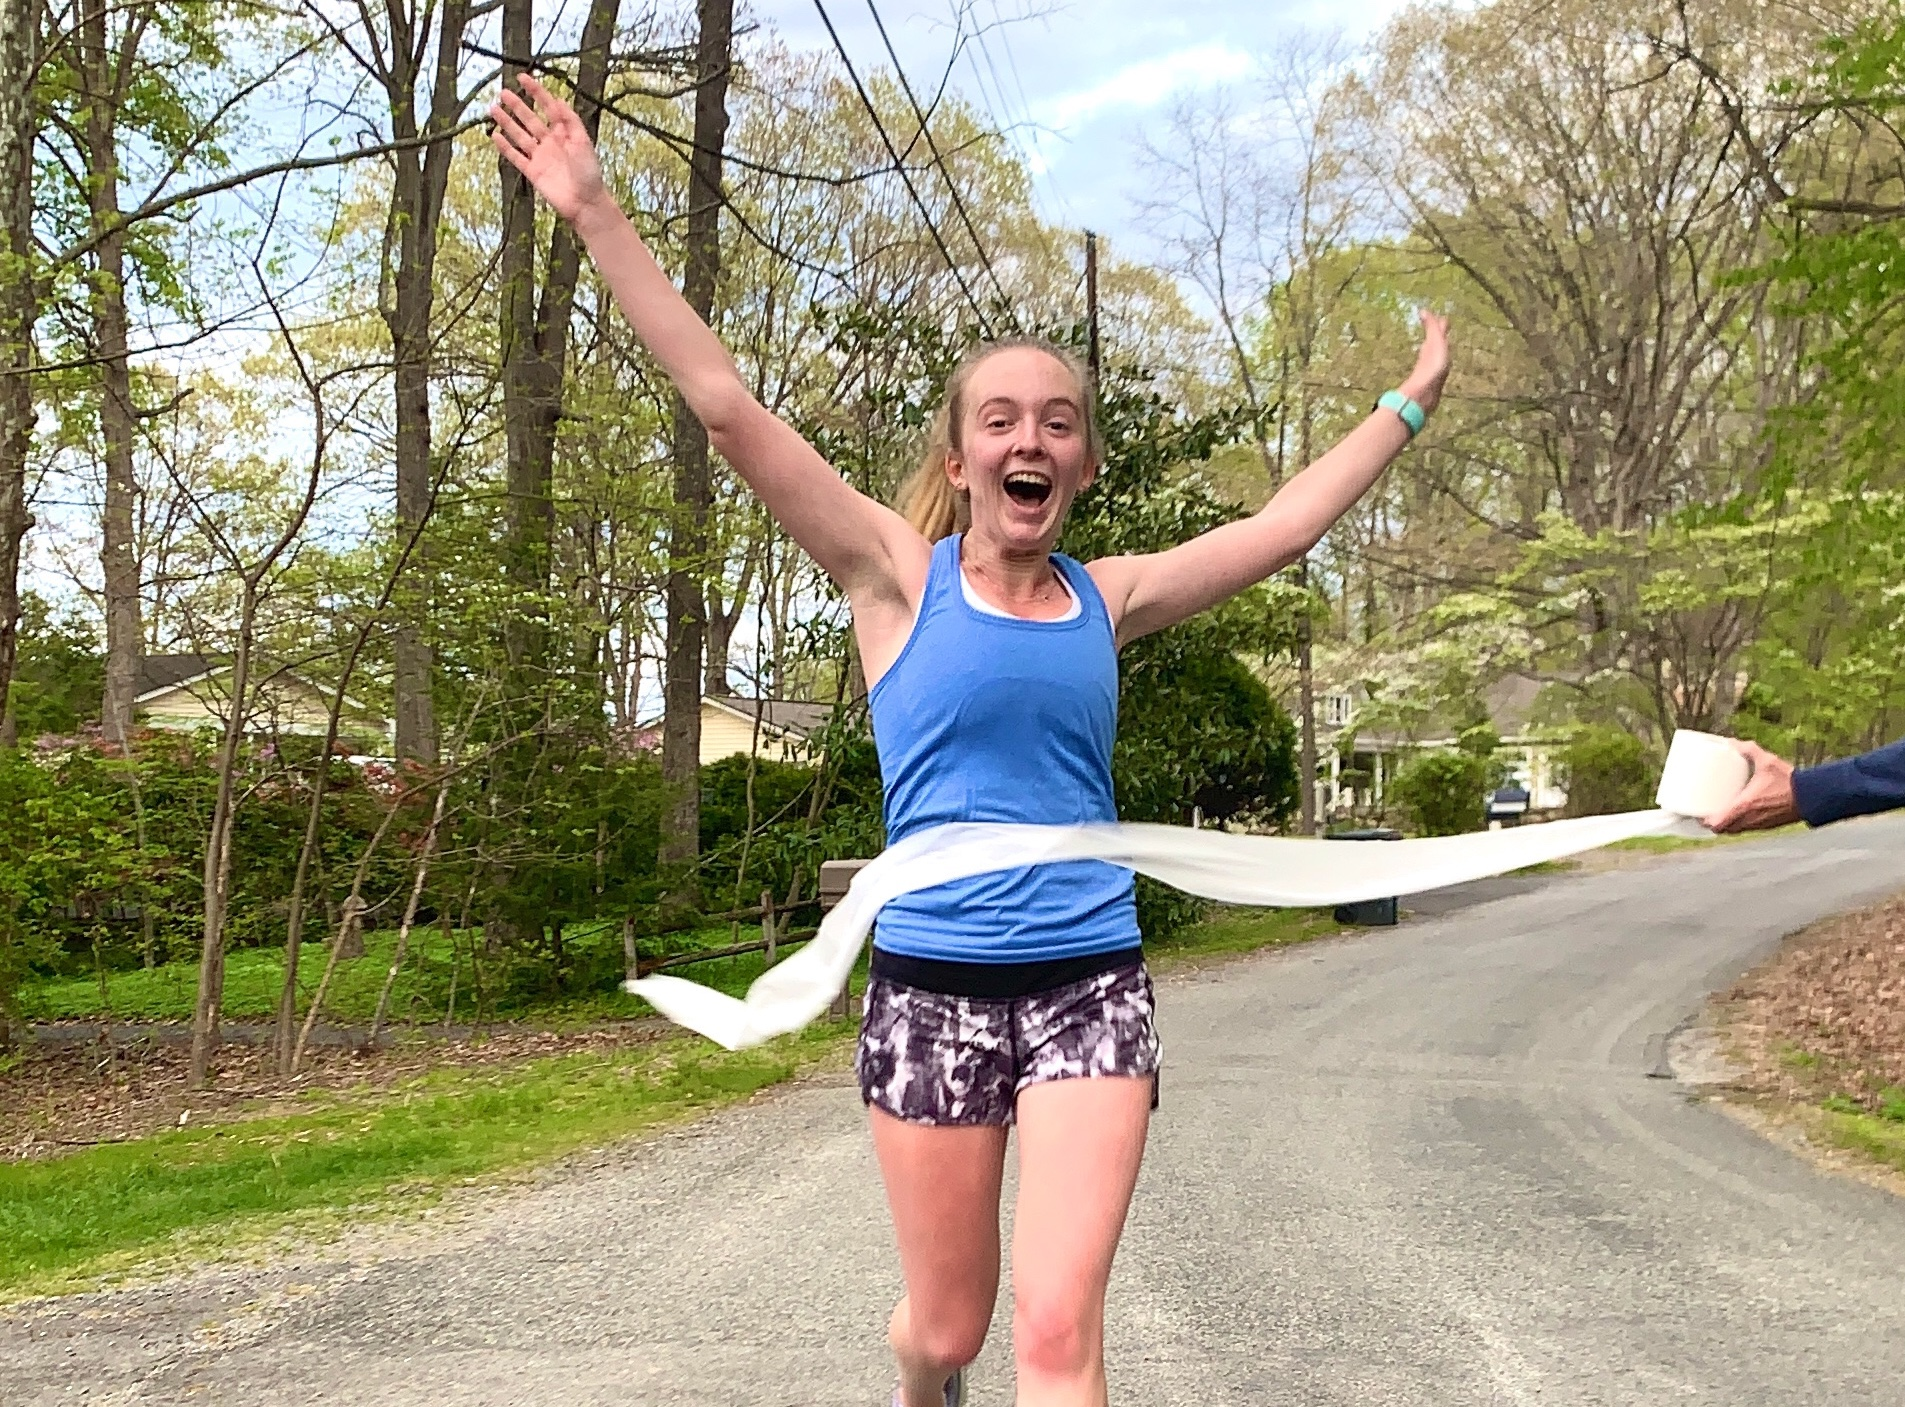 Franklin & Marshall College students ran in their communities during the school's virutal 5K this spring.